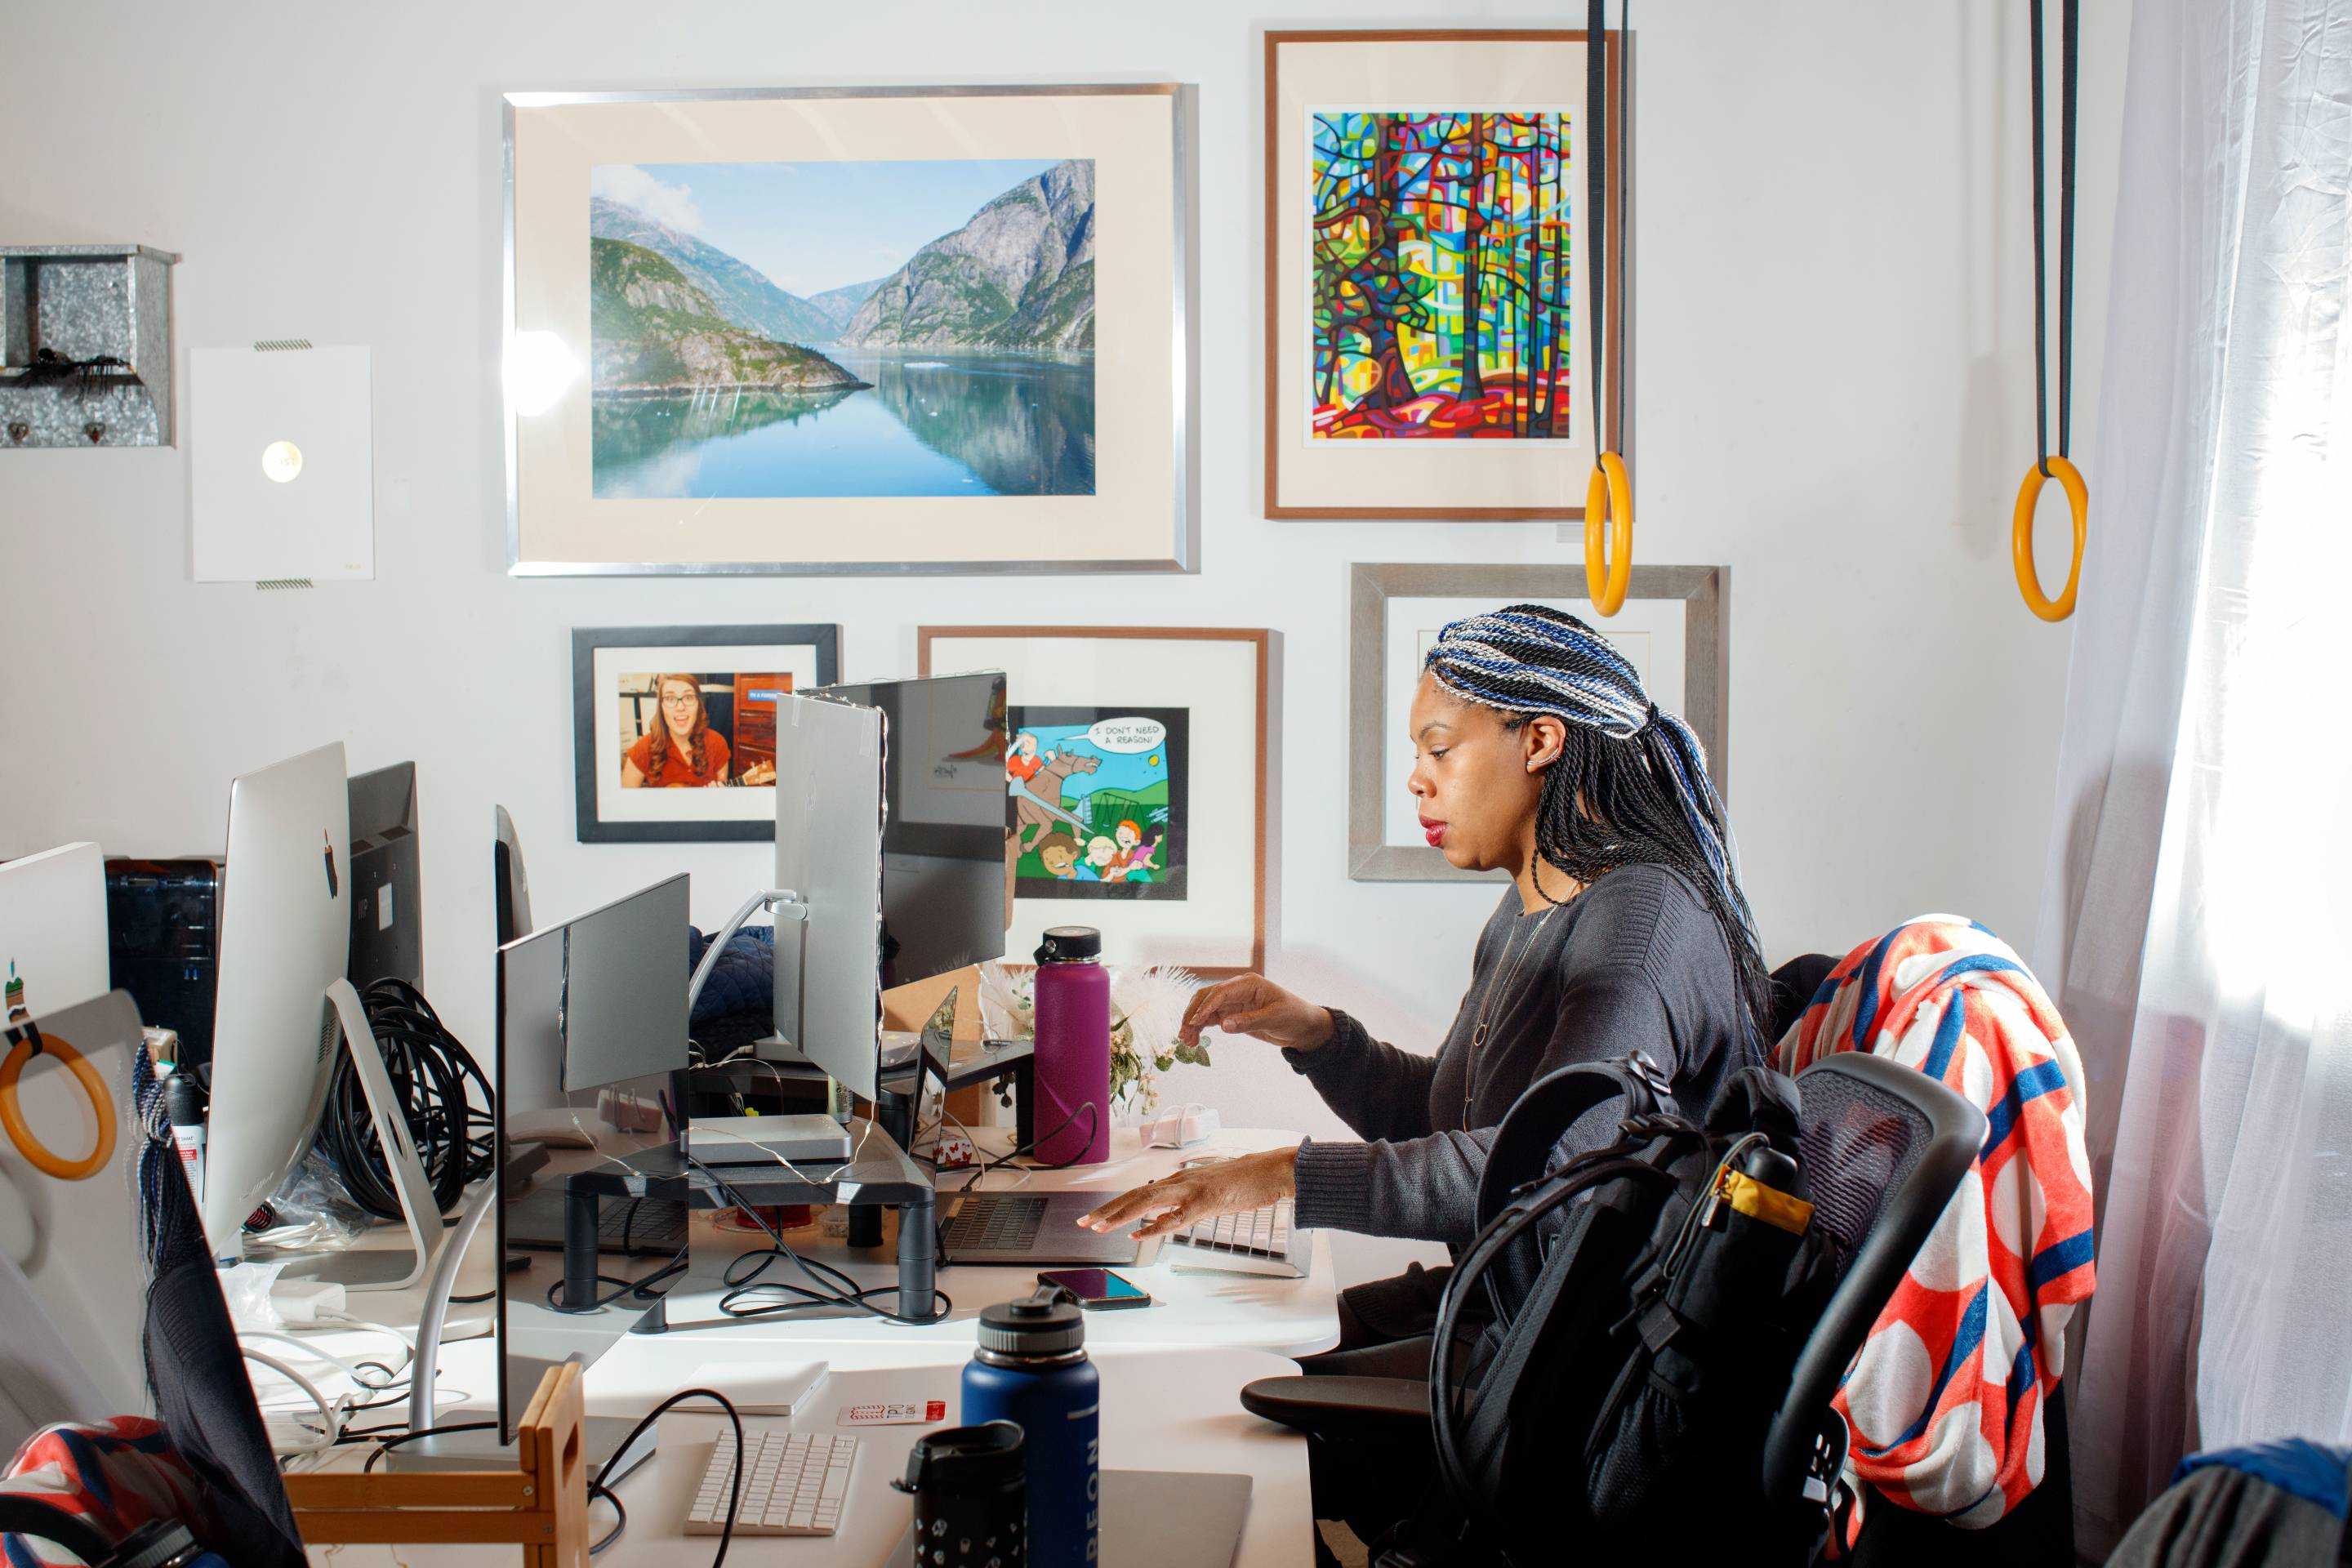 Snubbed by a computer science professor at her dream school, Erica Joy Baker fought her way back to top engineering jobs in Silicon Valley.